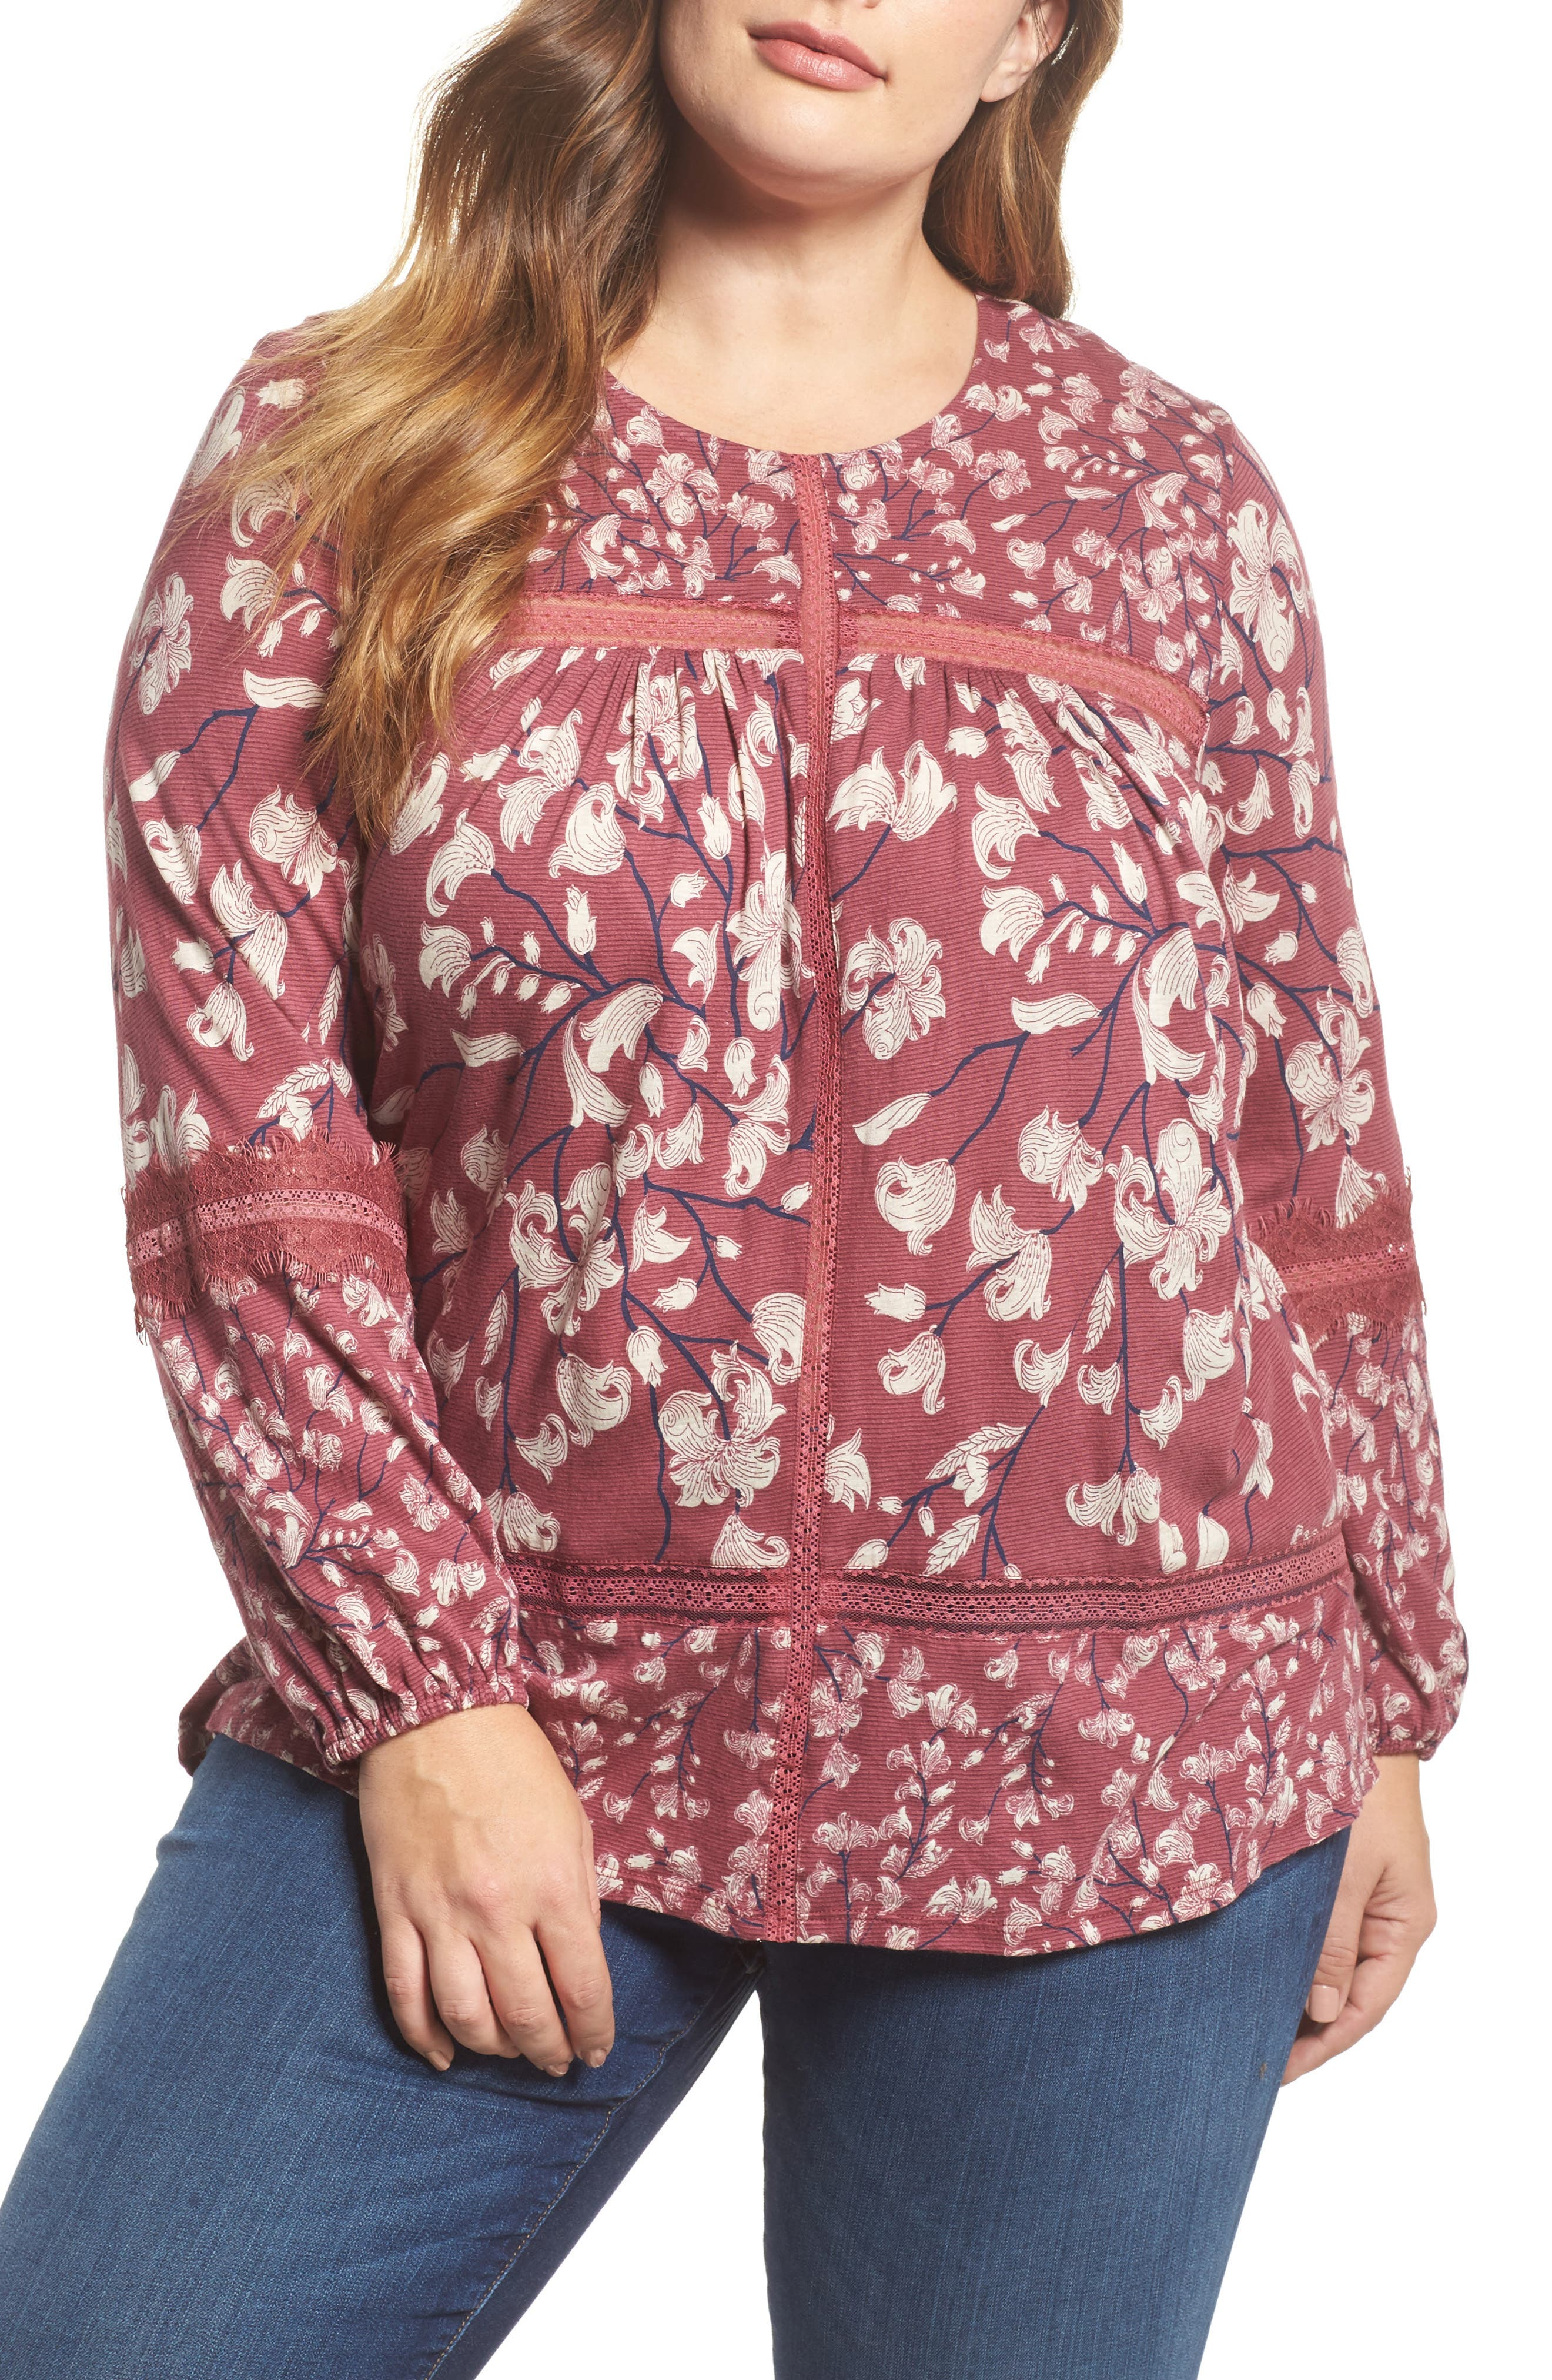 Main Image - Lucky Brand Lace Inset Print Top (Plus Size)